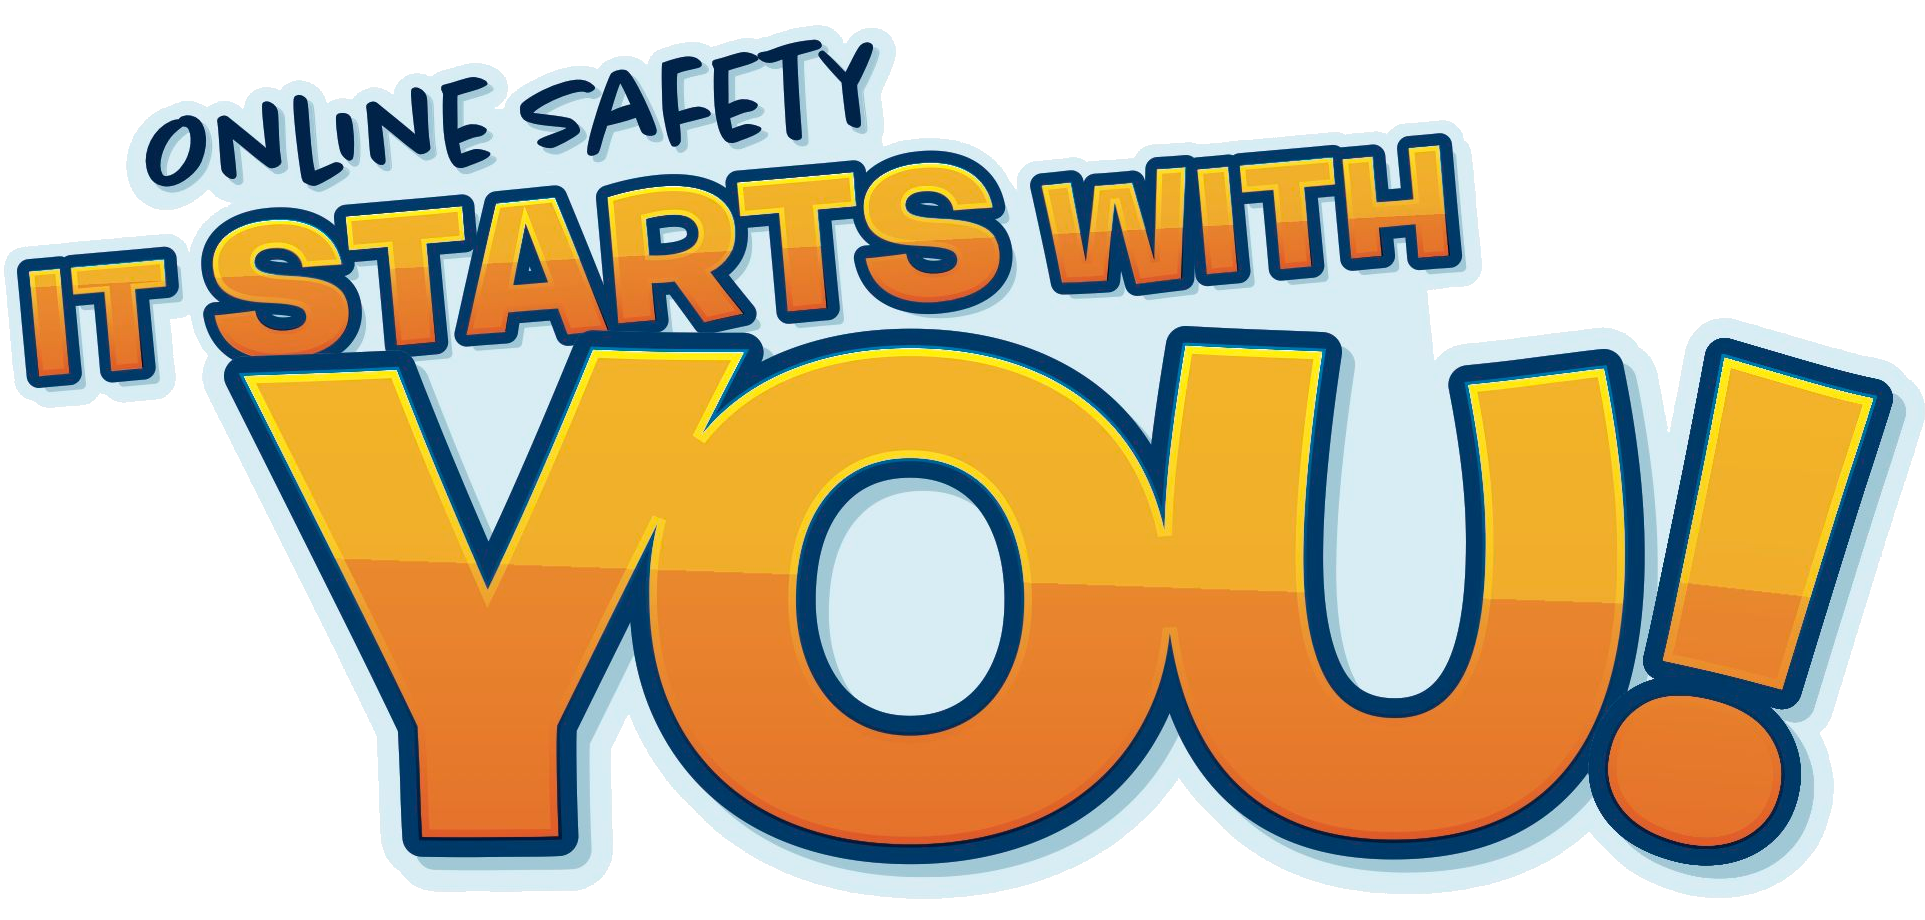 Website clipart internet safety, Website internet safety.